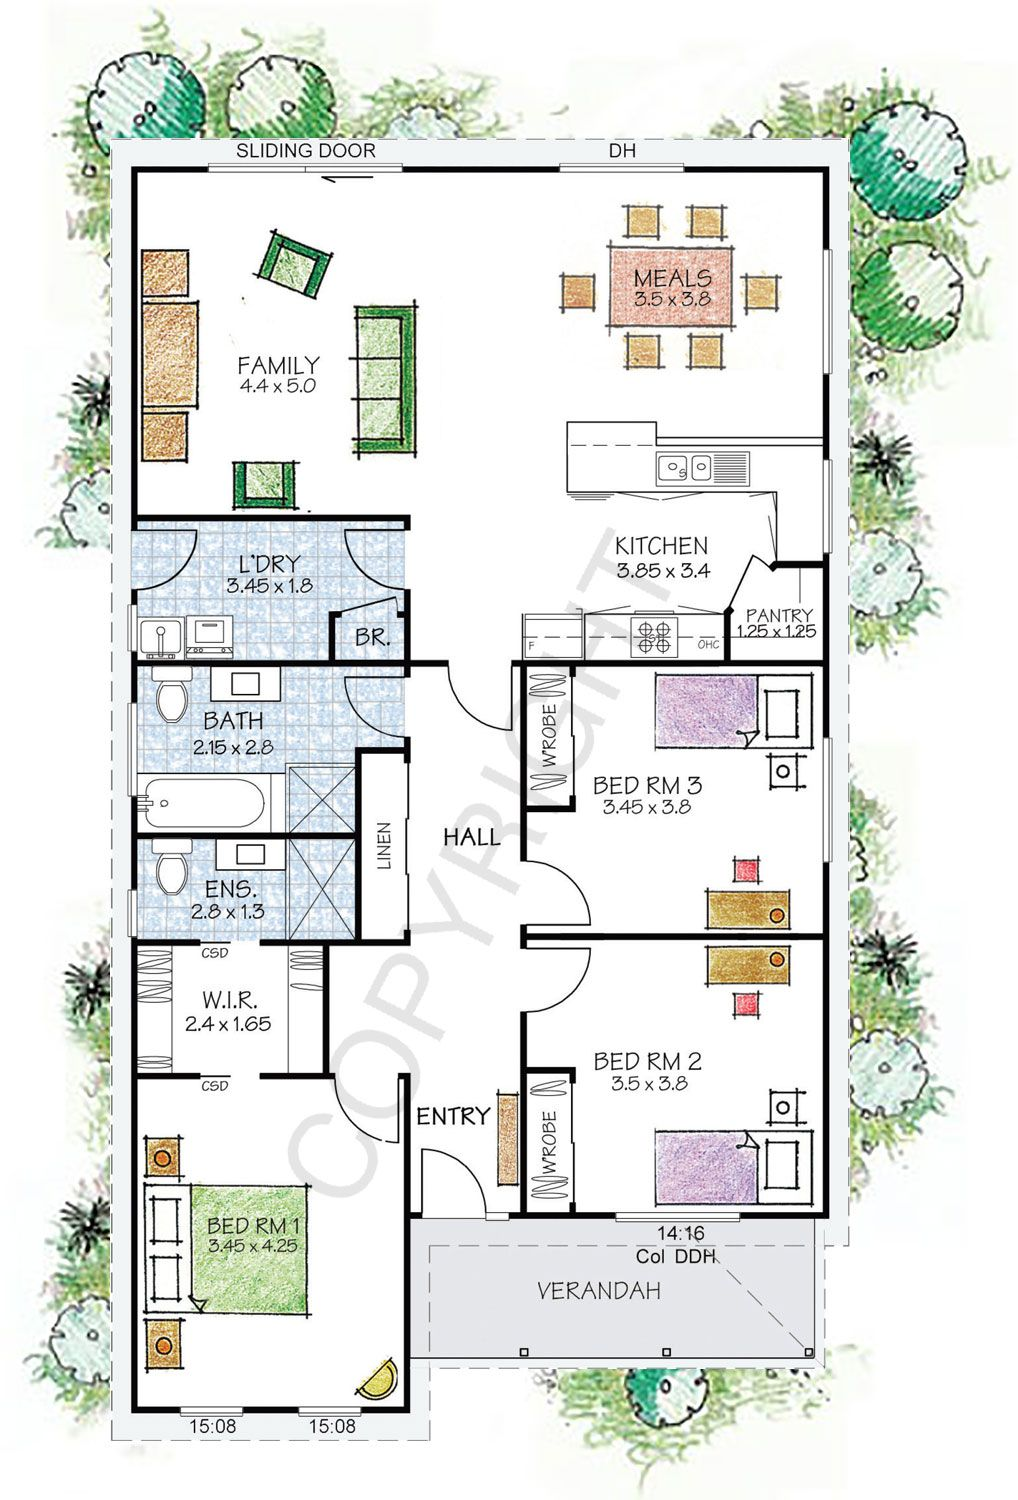 The Fitzroy Floor Plan Paal Kit Homes Offer Easy To Build Steel Frame Kit Homes For The Owner Builder And Have Di Kit Homes House Plans Australia Floor Plans